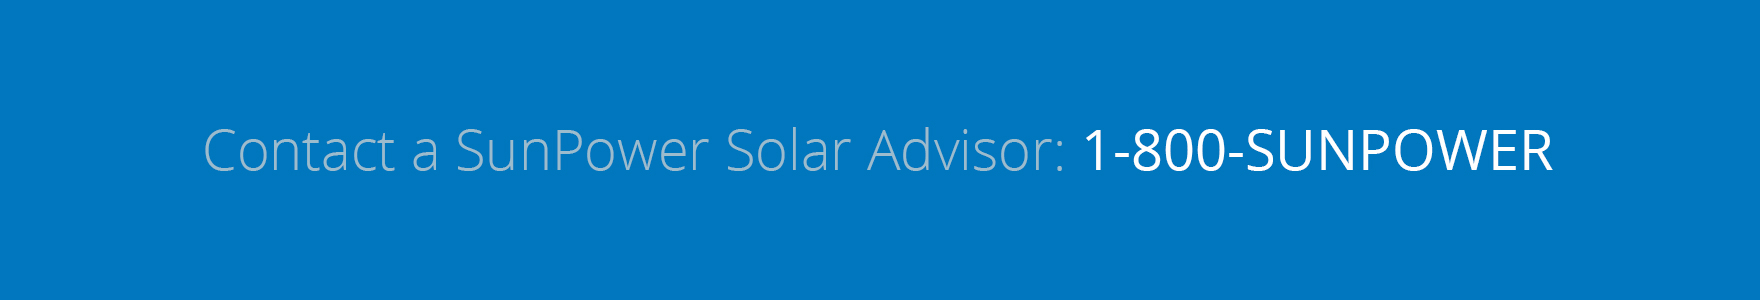 Contact a SunPower Solar Advisor